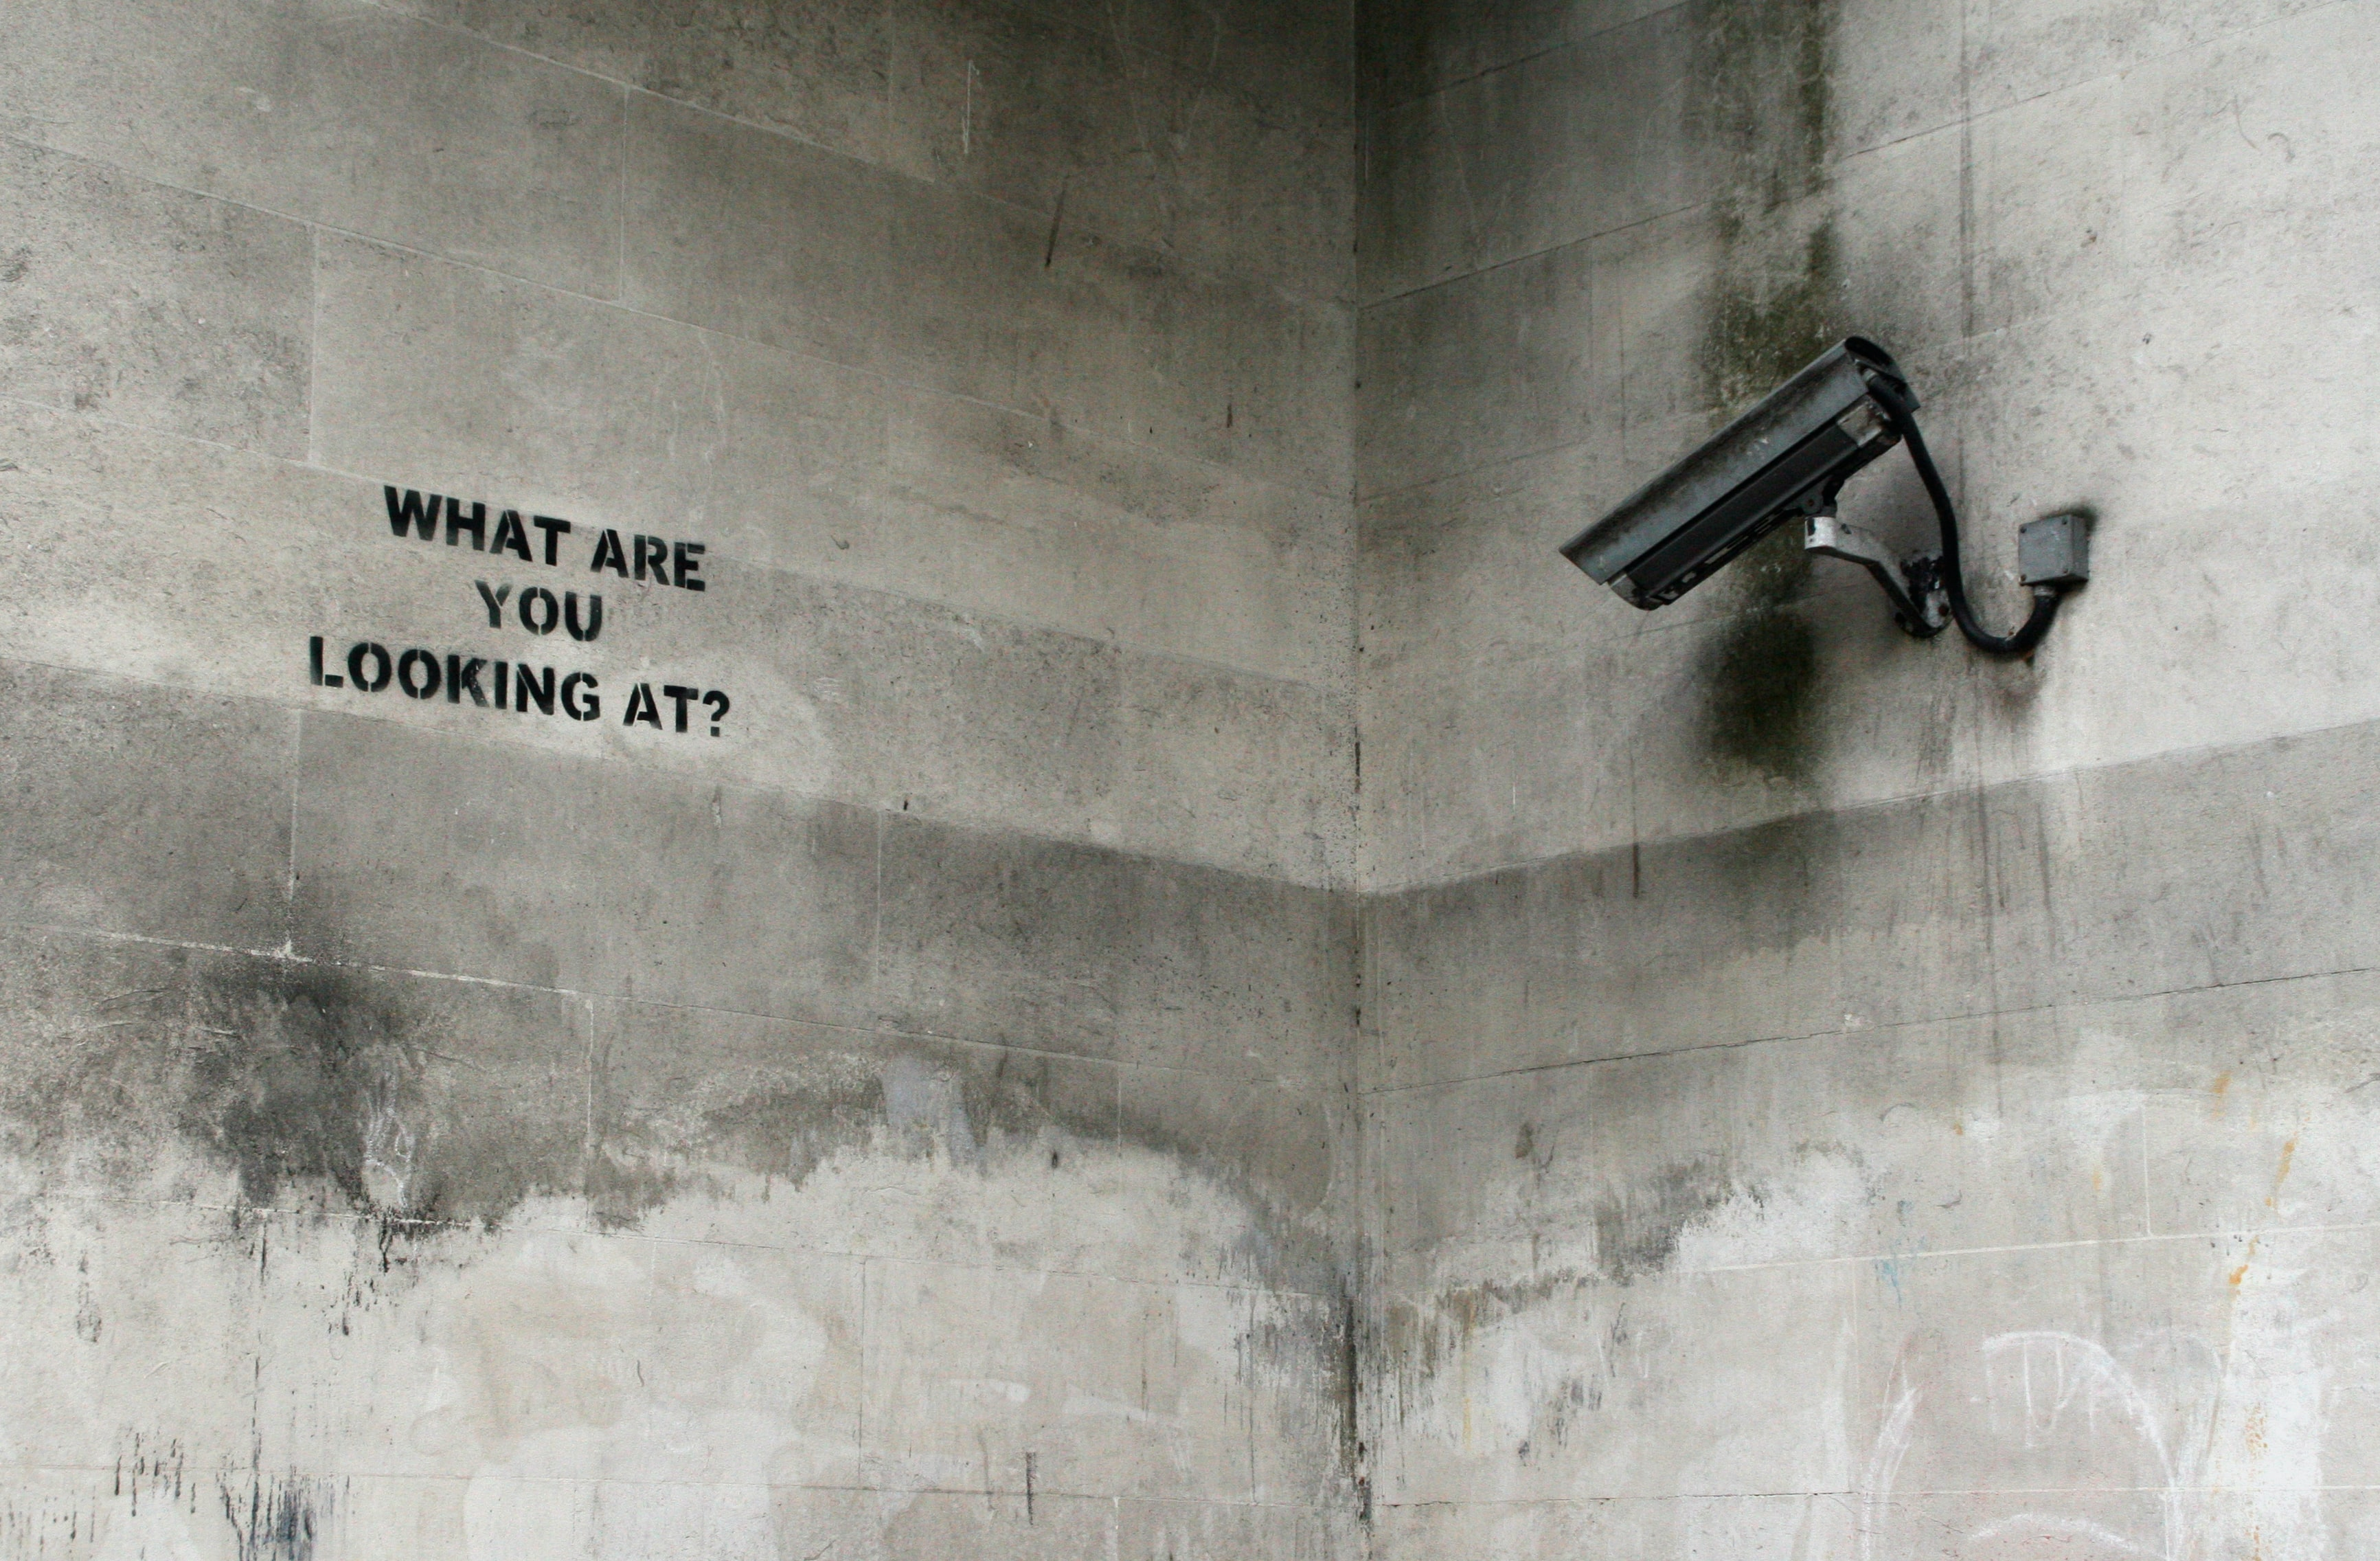 black CCTV camera on wall